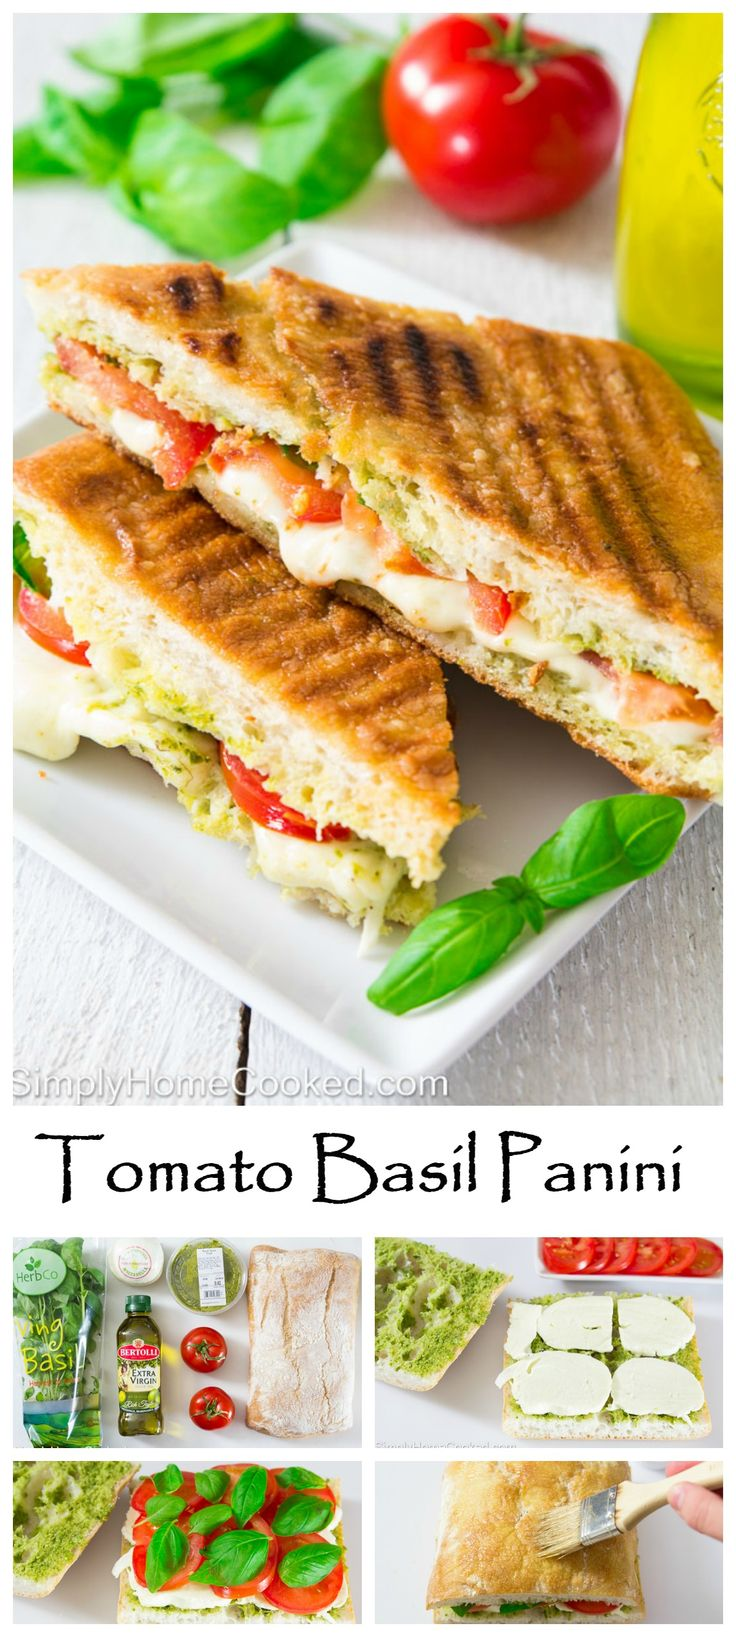 Grilled tomato basil panini with fresh melted mozzarella oozing out.